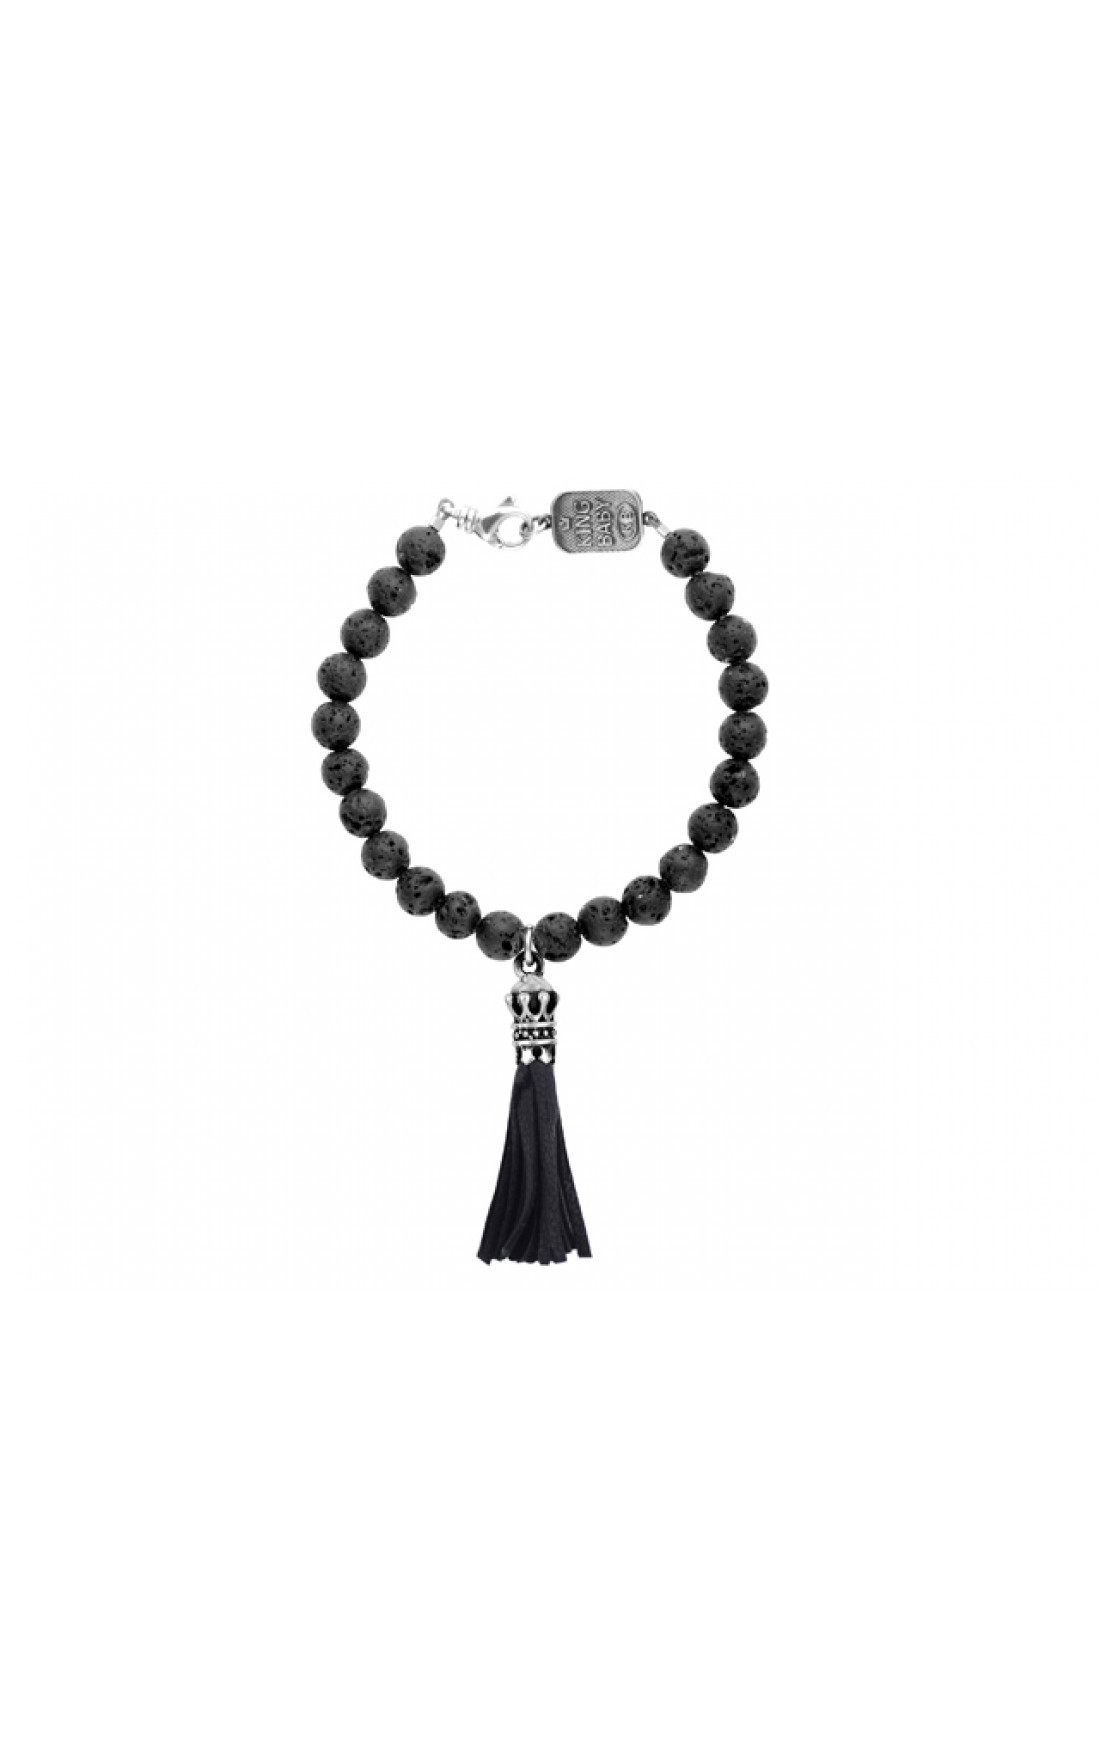 King Baby - 8mm Lava Rock Bead Bracelet With Crown Leather Tassel (K42-5172)